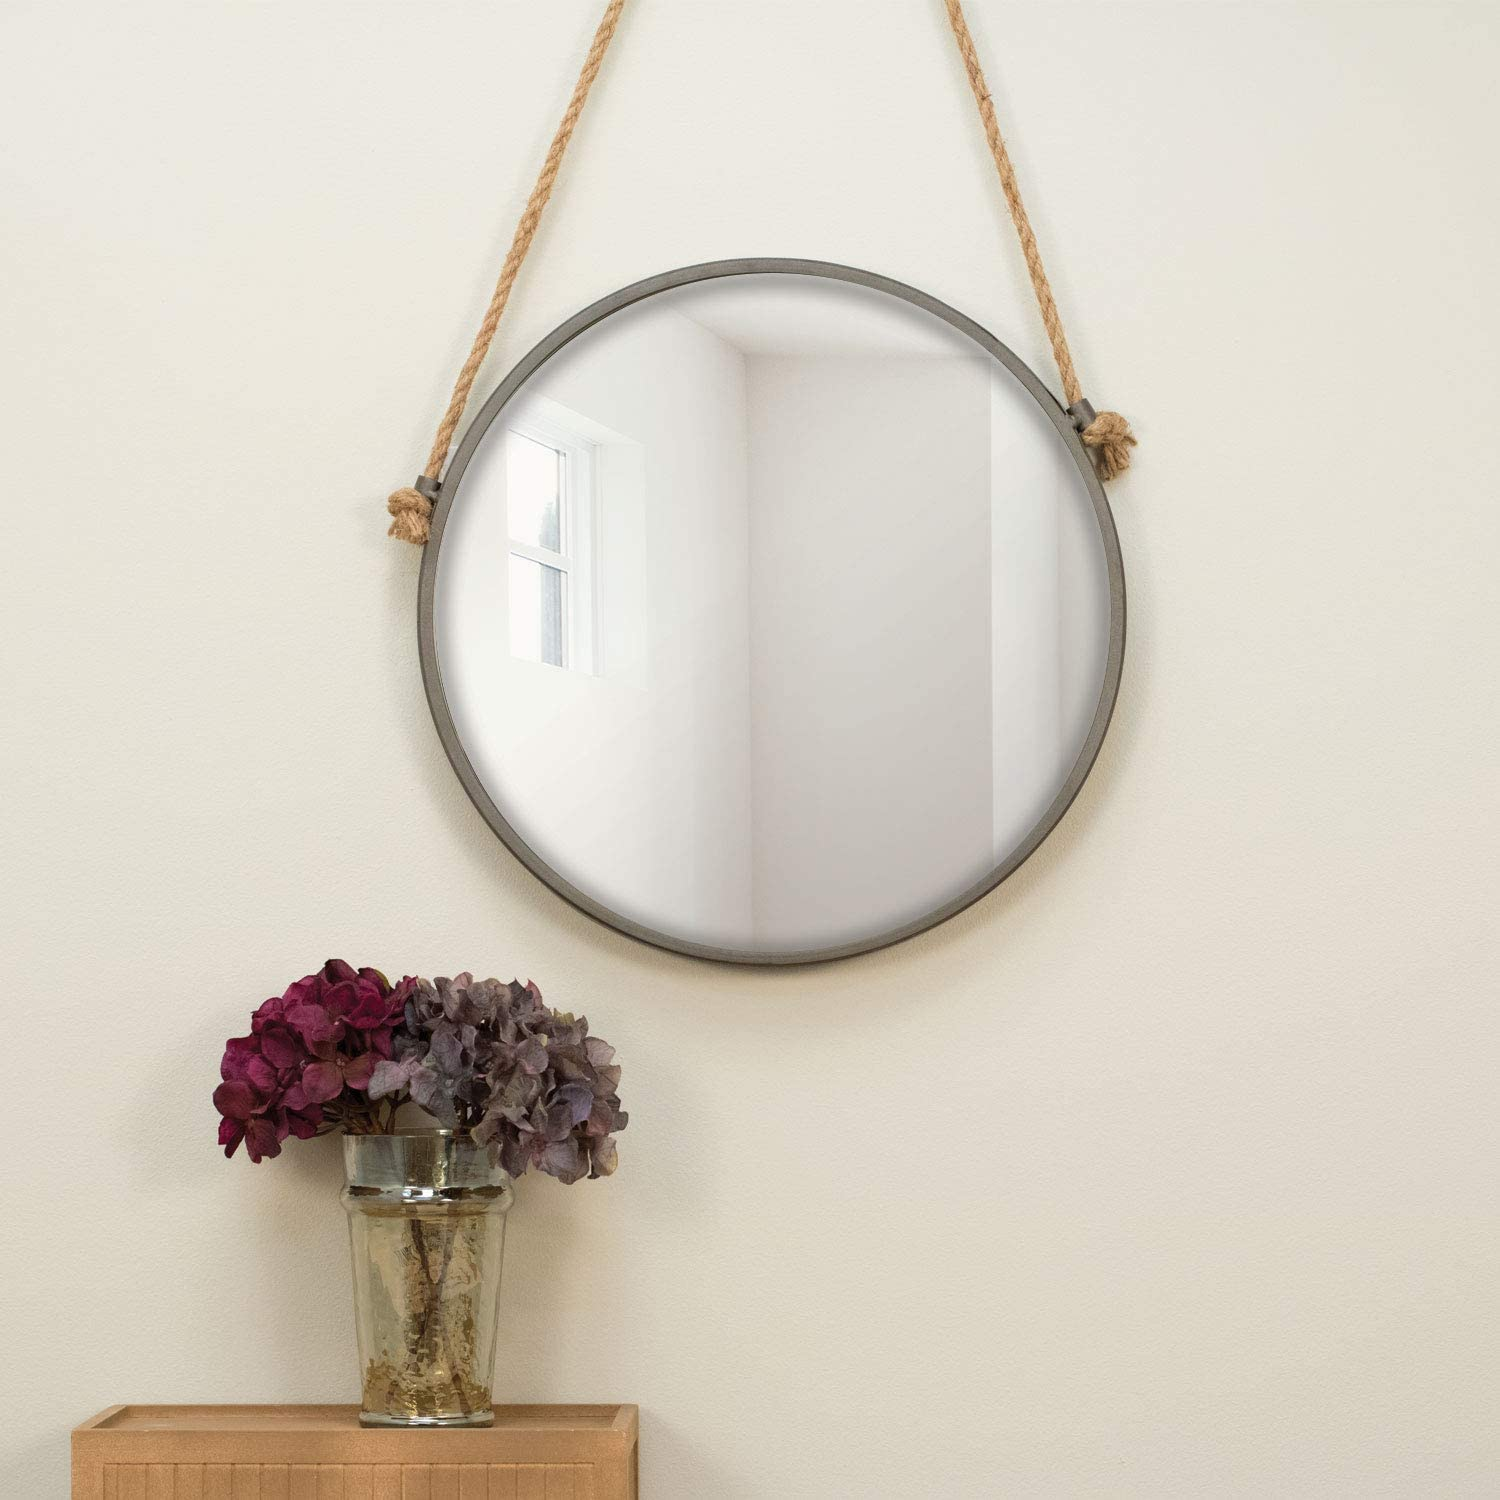 Foreside 15 inch Diameter Round Rustic Wall Mirror